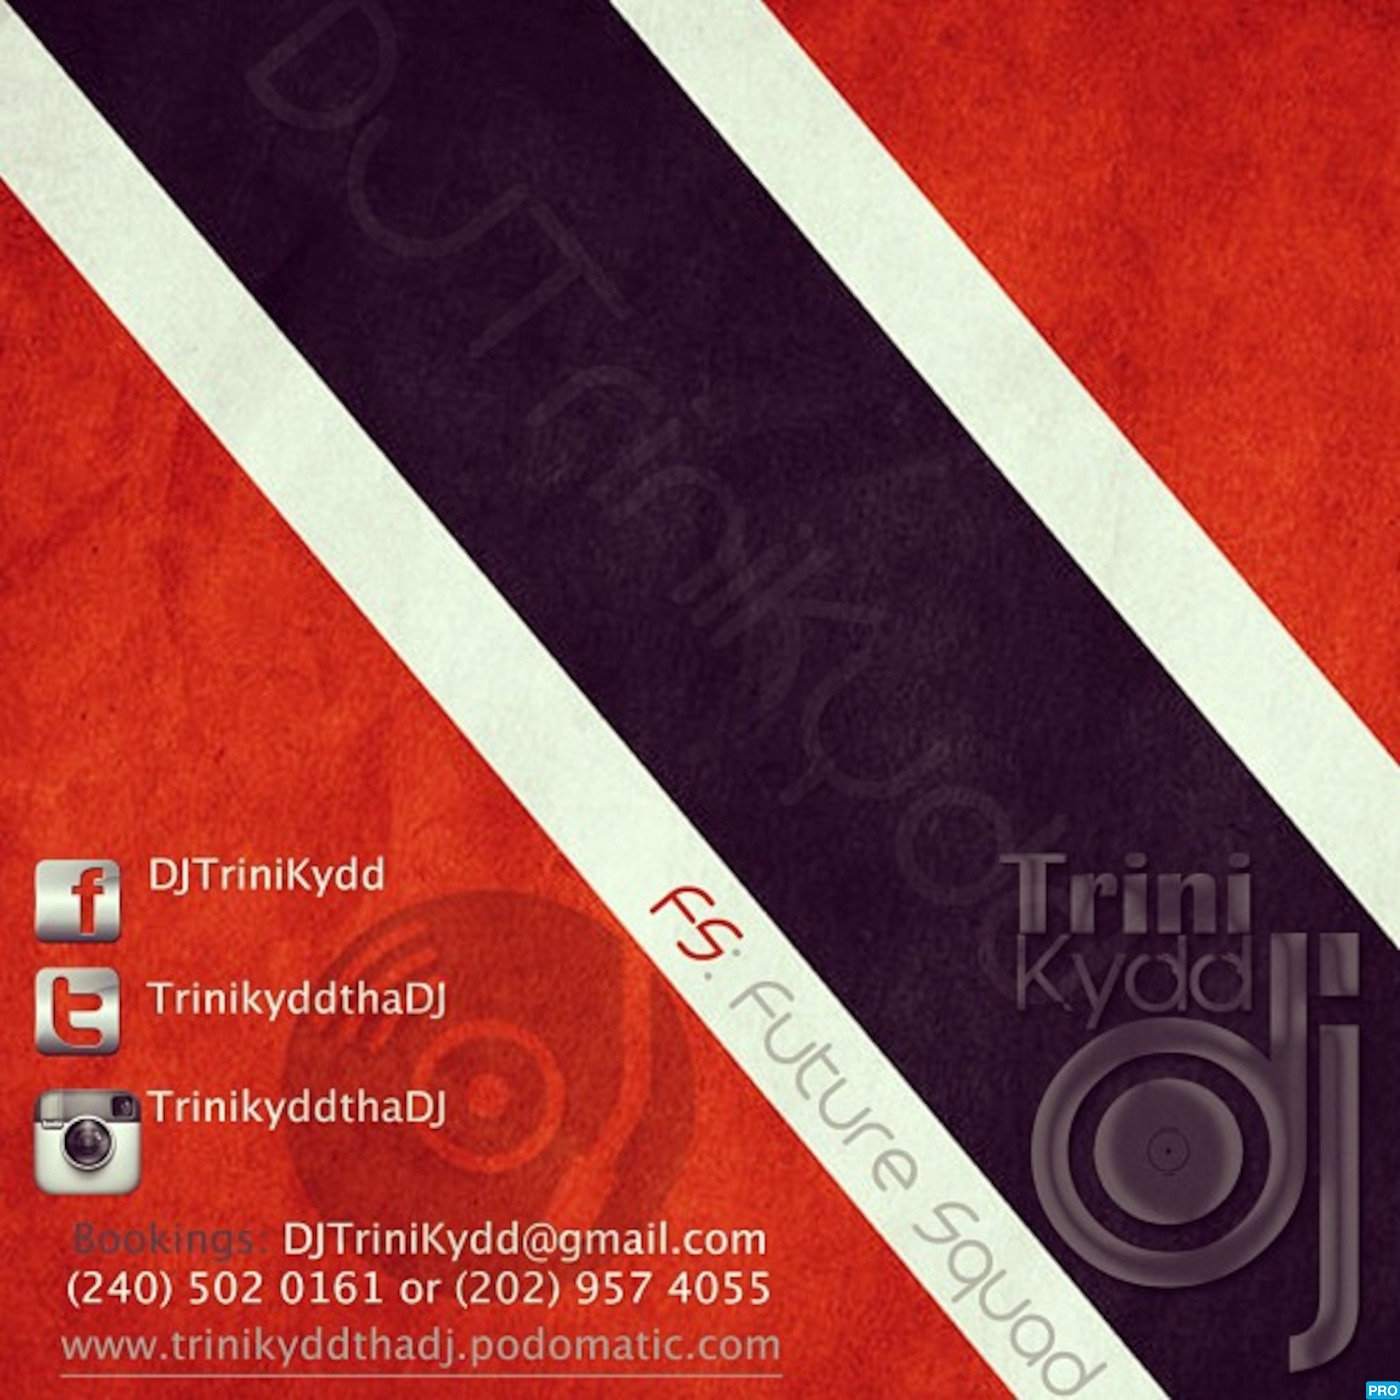 DJ TRINIKYDD's Podcast (Follow Me On Twitter @TriniKyddThaDj)